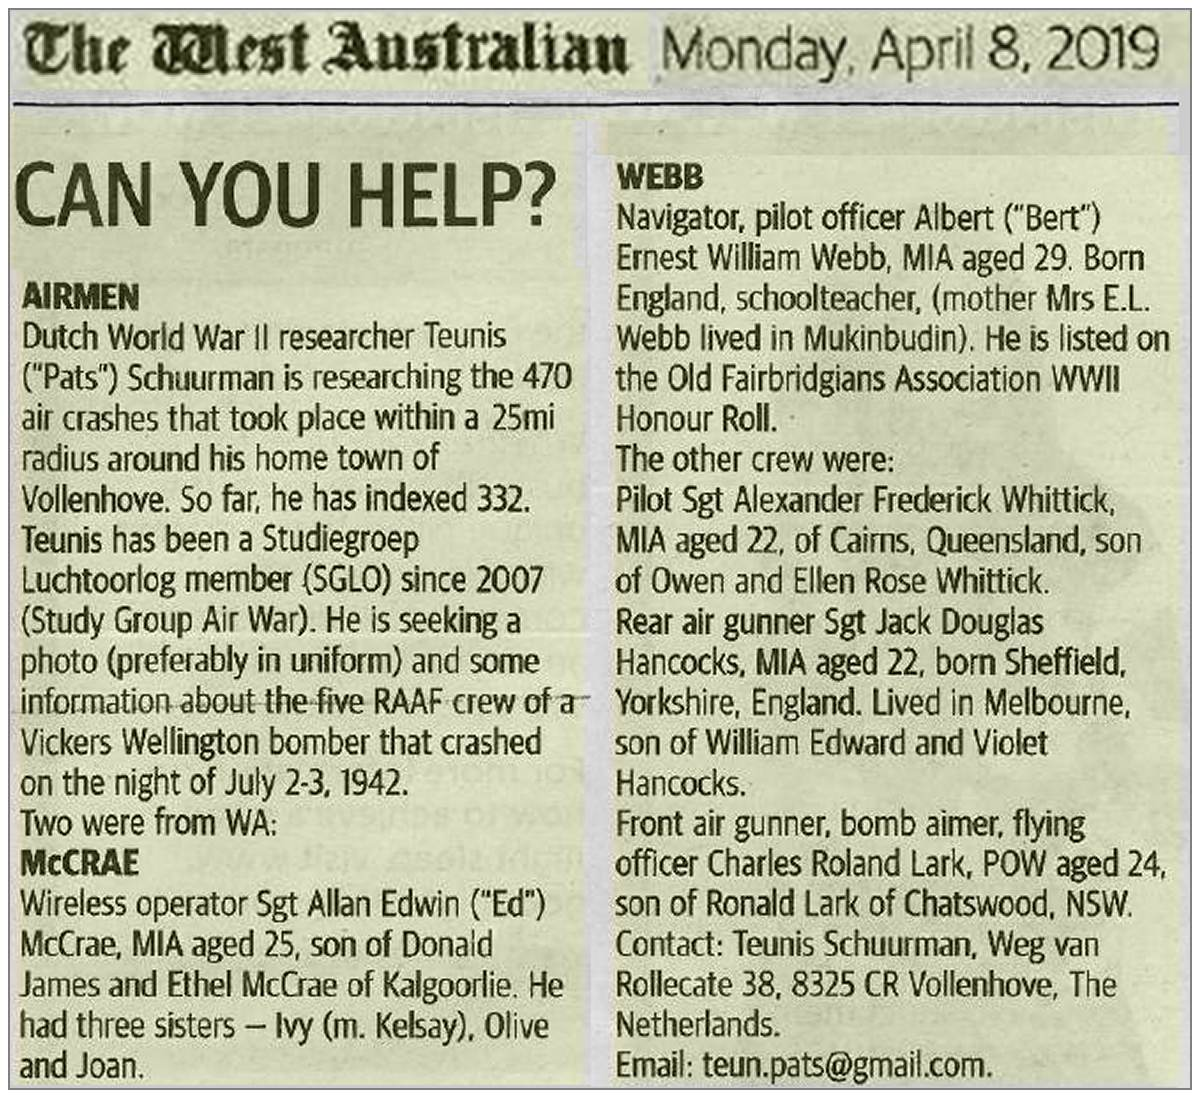 CAN YOU HELP? - The West Australian - Monday, April 8, 2019 - page 63